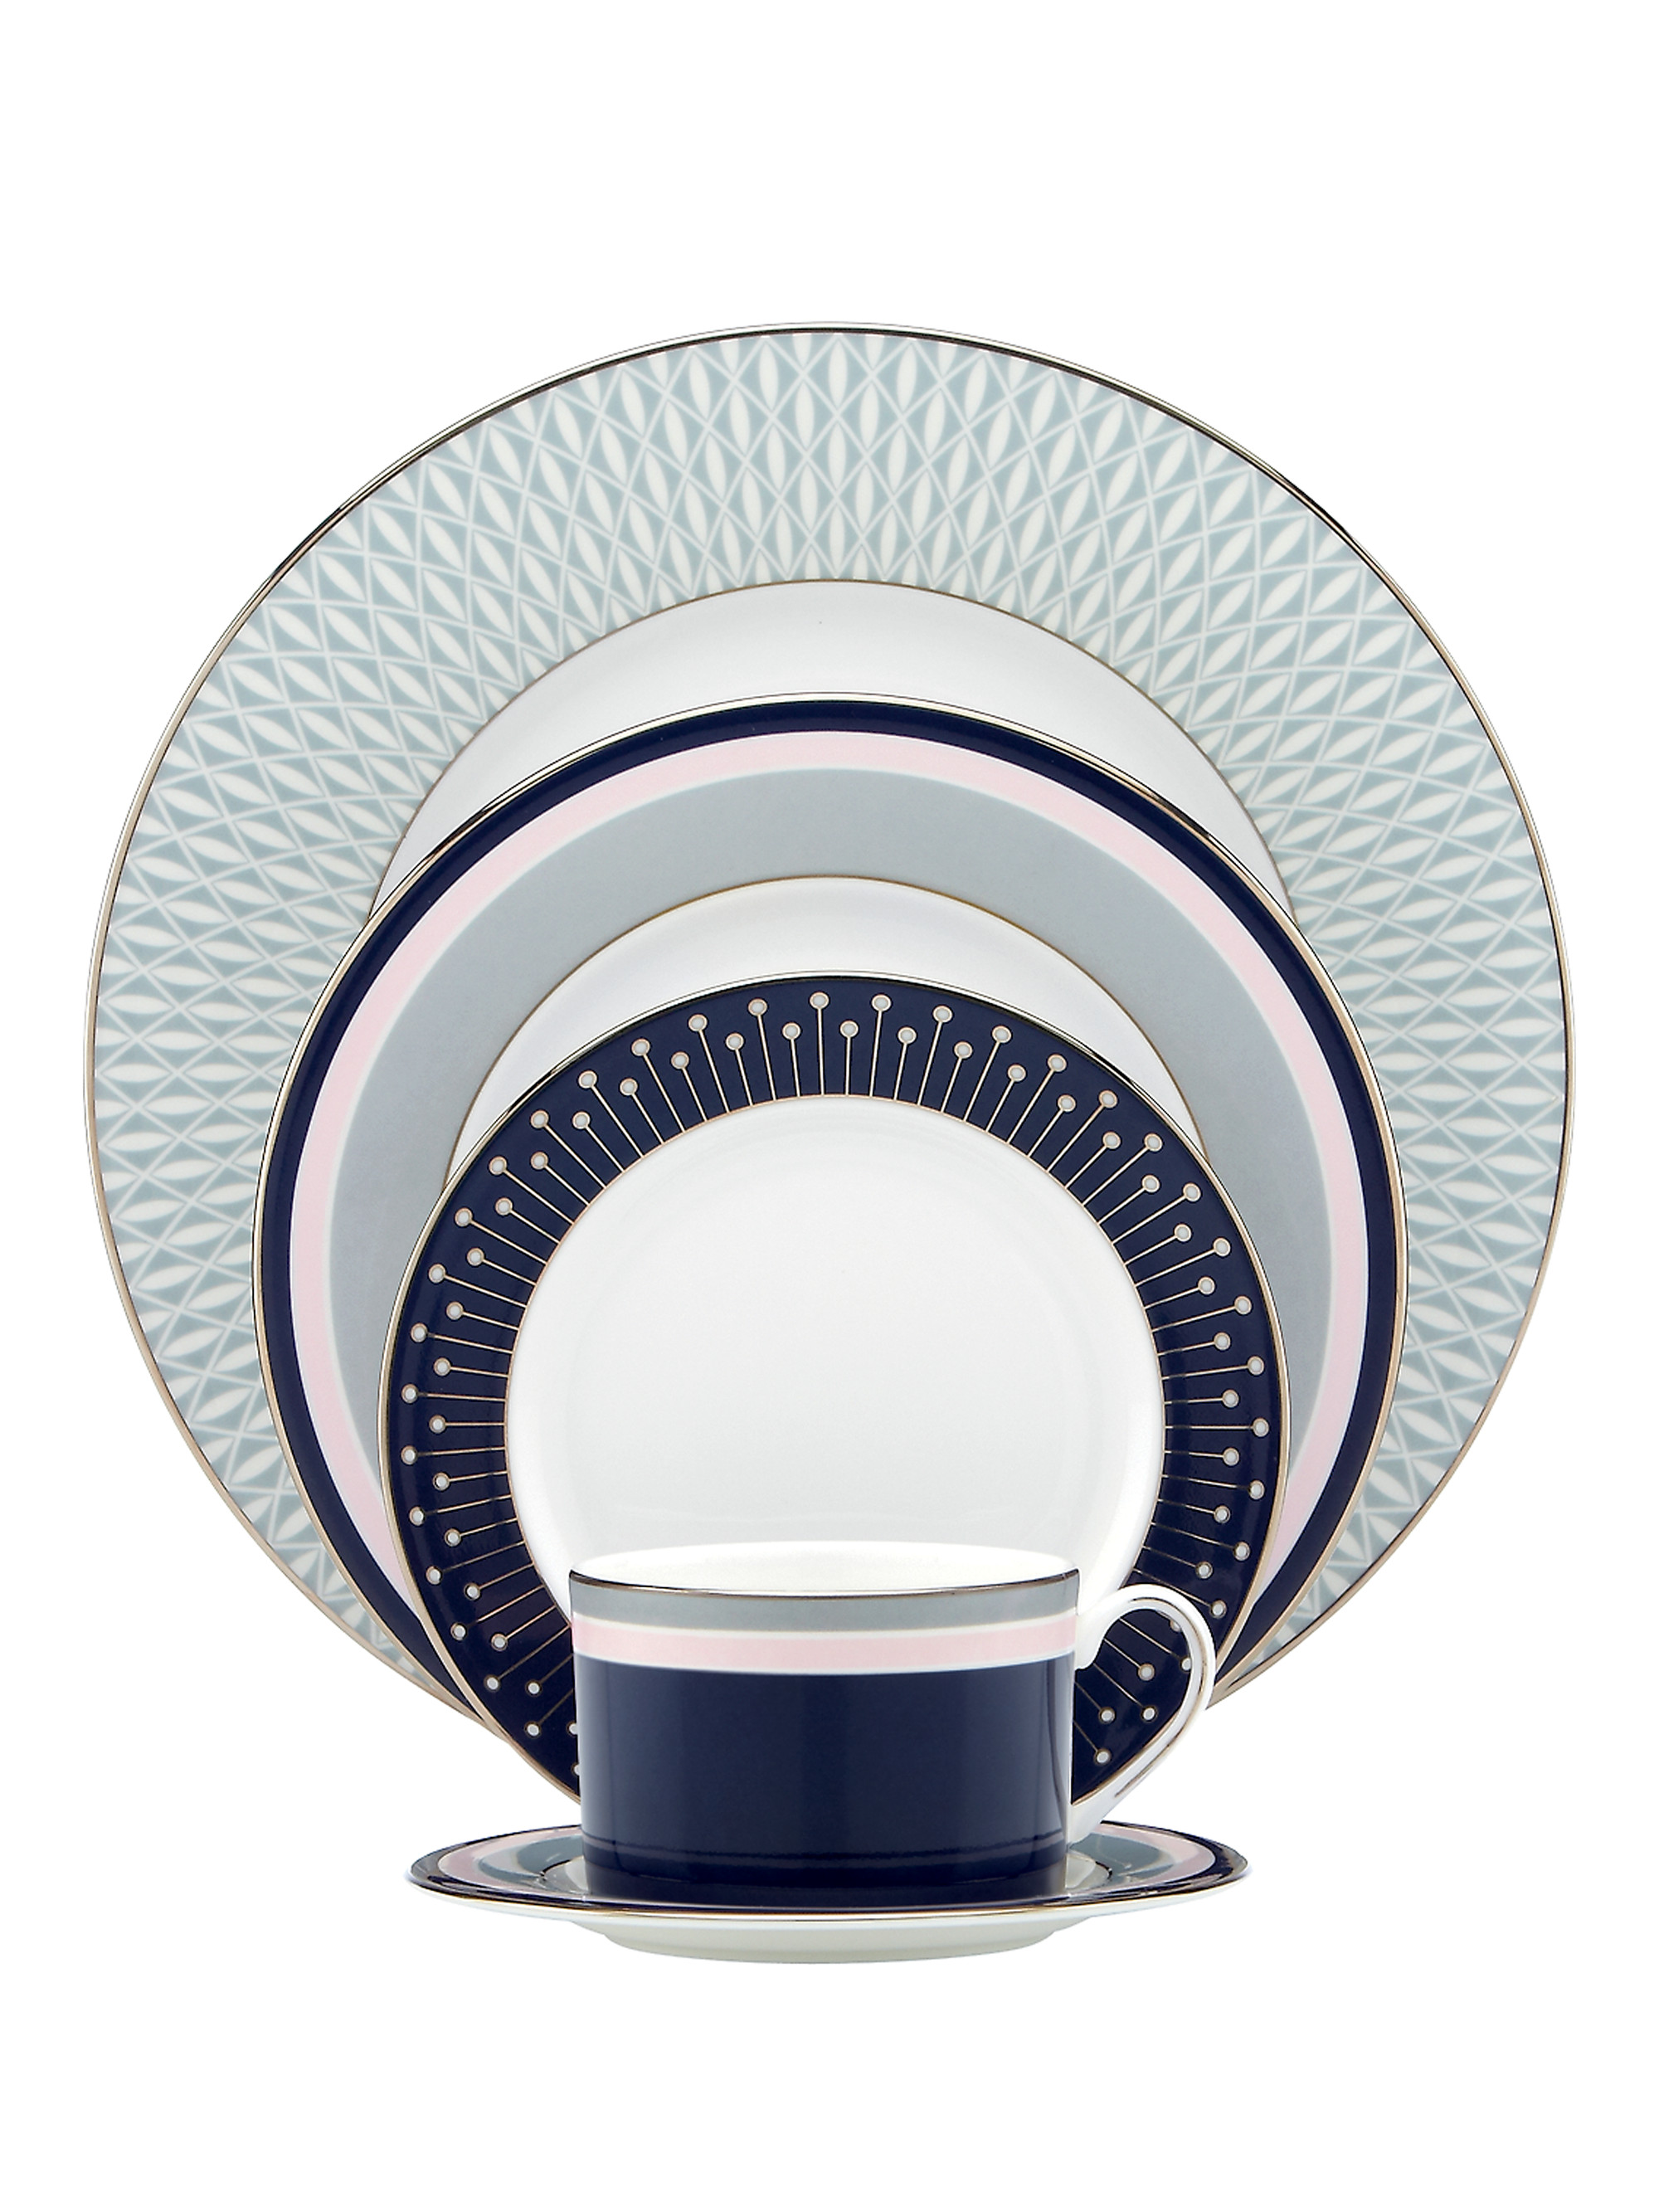 Kate spade mercer drive five-piece place setting